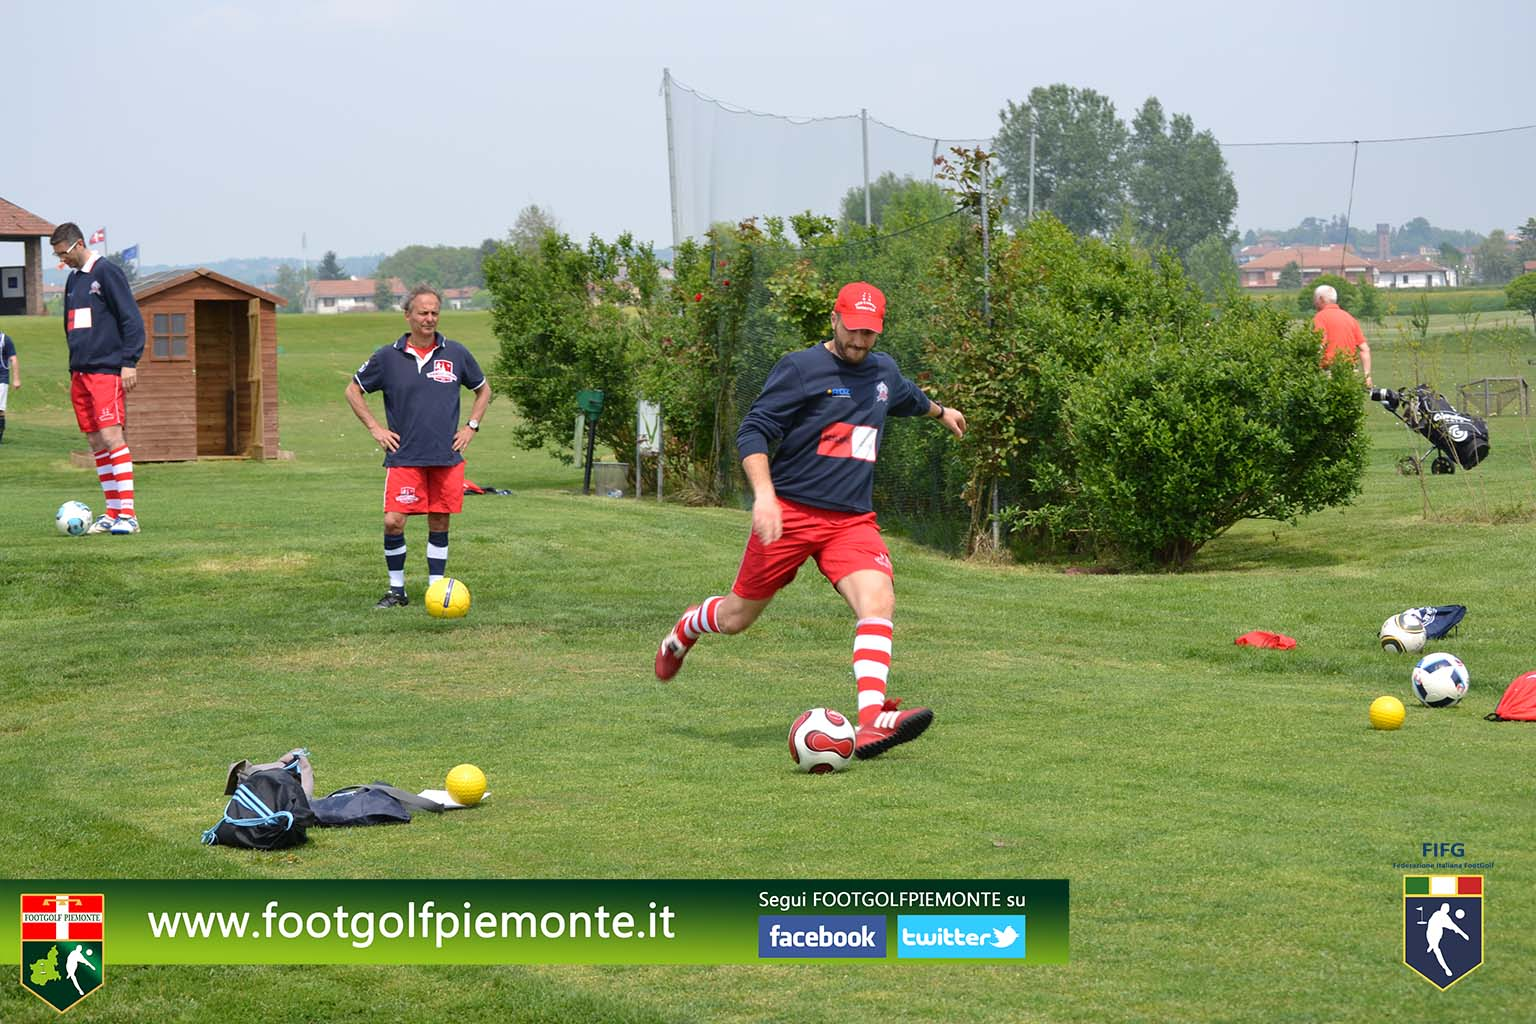 FOTO 9 Regions' Cup Footgolf Piemonte 2016 Golf Città di Asti (At) 30apr16-14